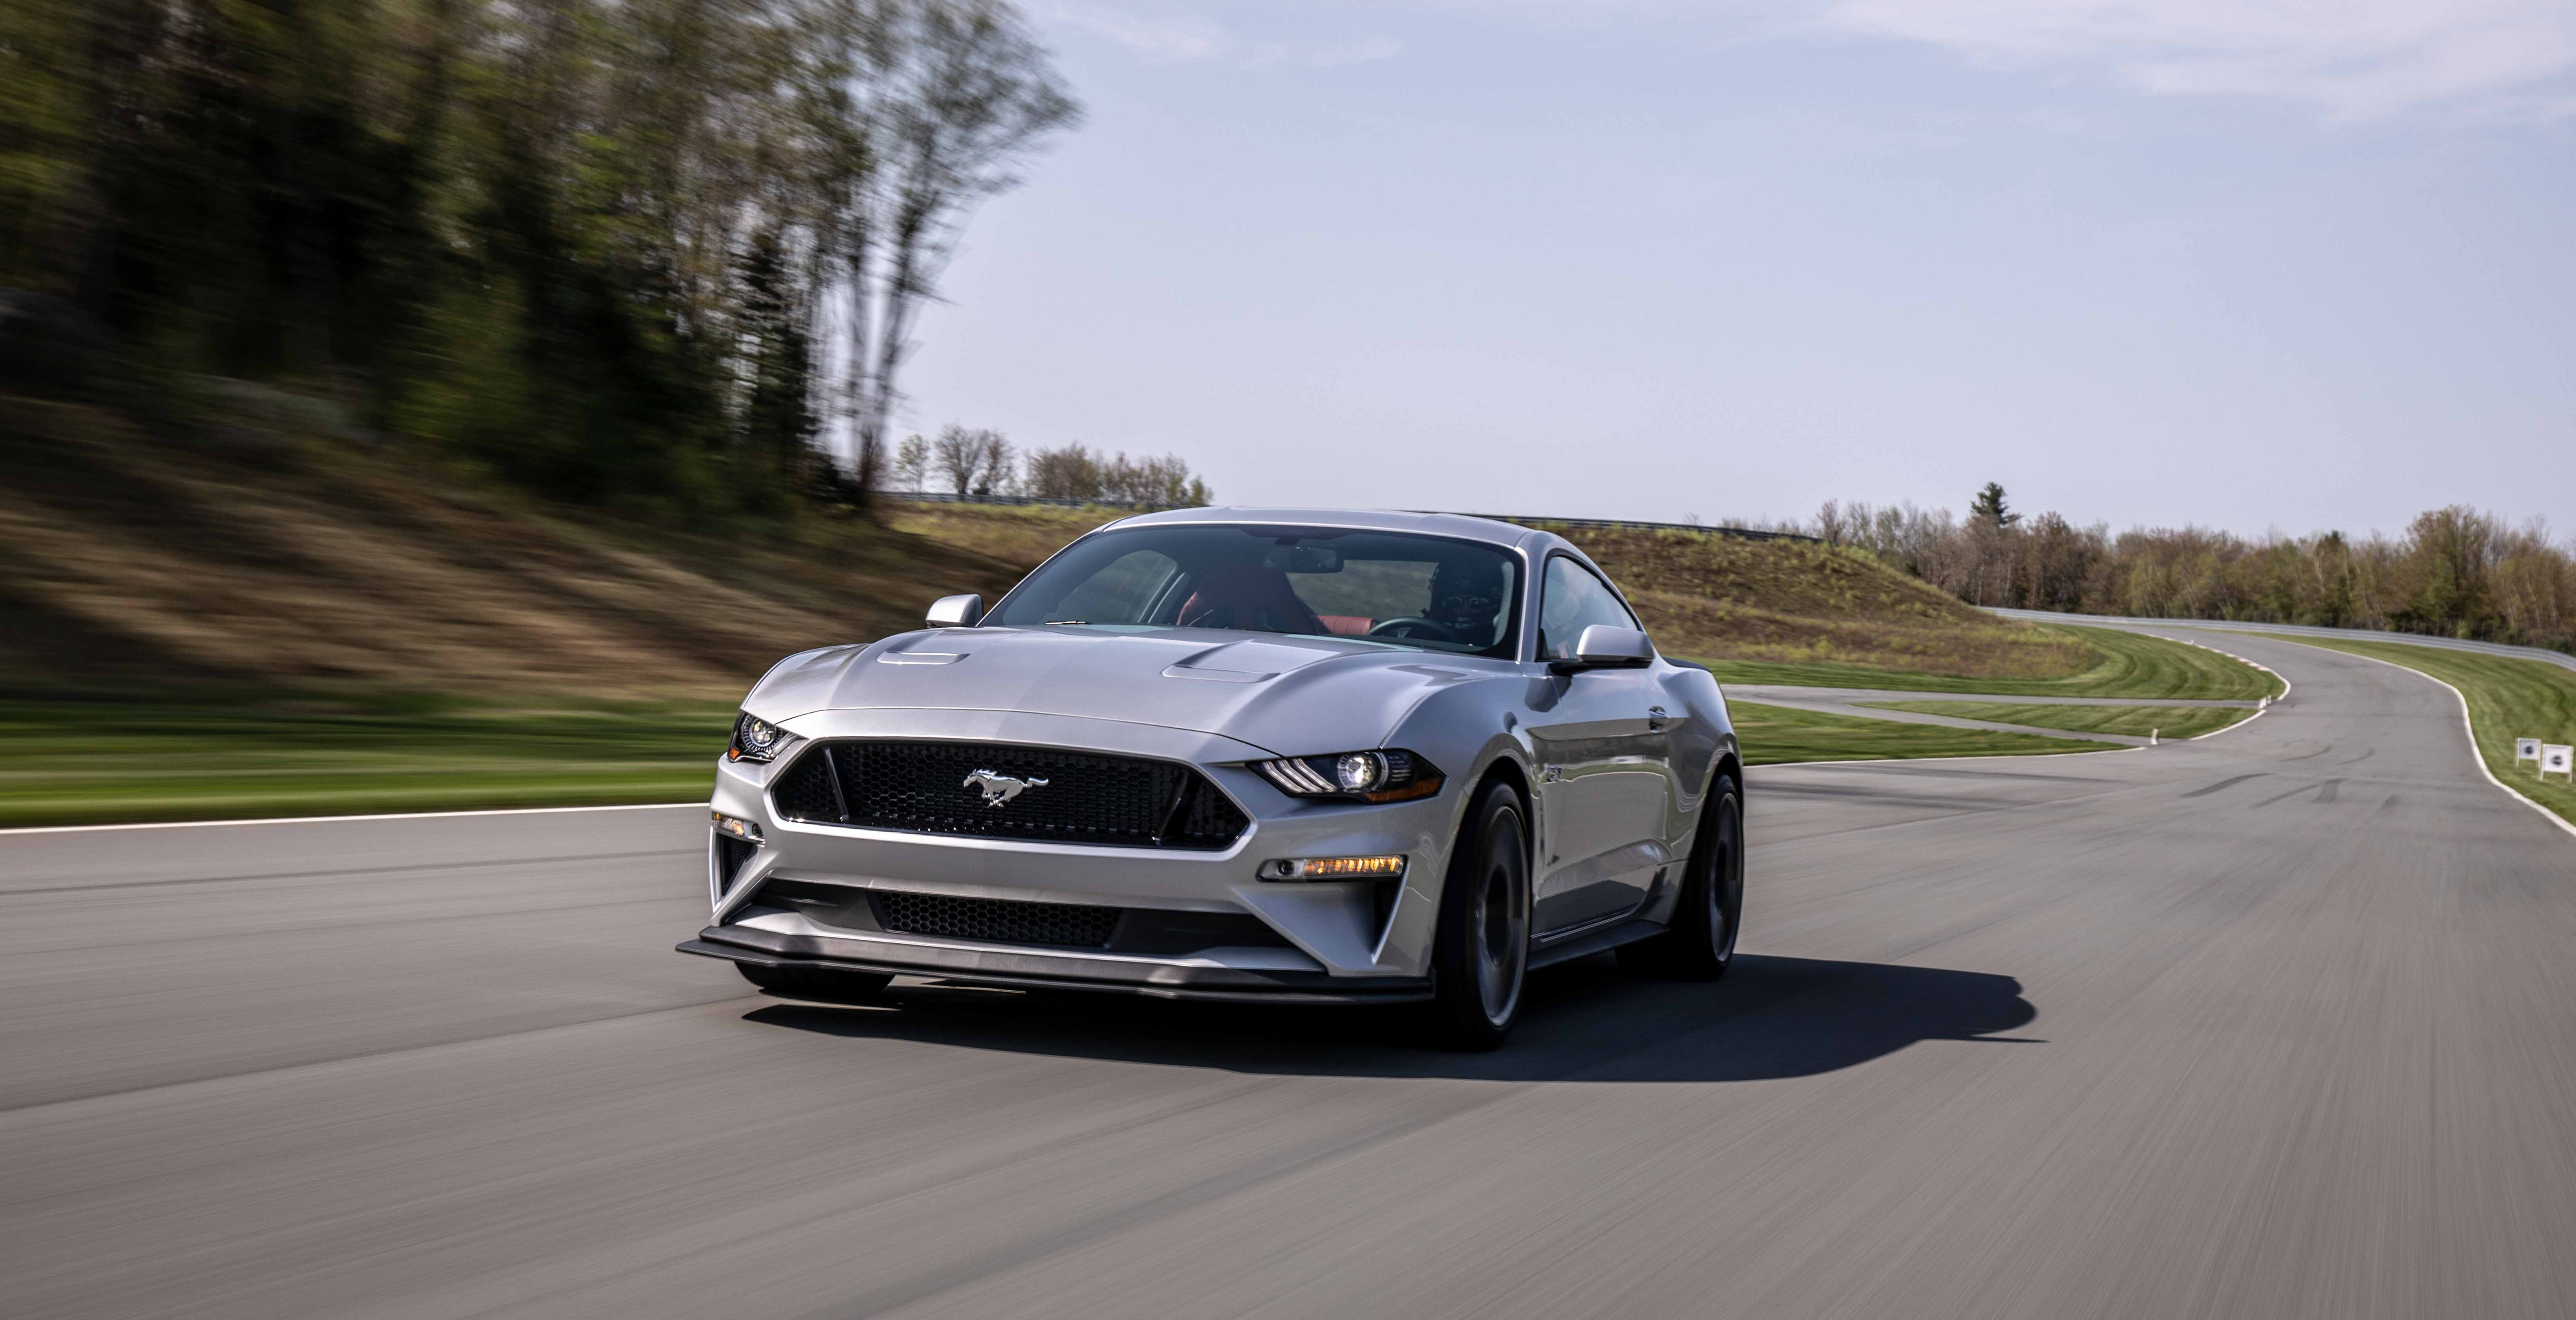 2018 Ford Mustang GT Performance Pack 2 on track 3/4 front